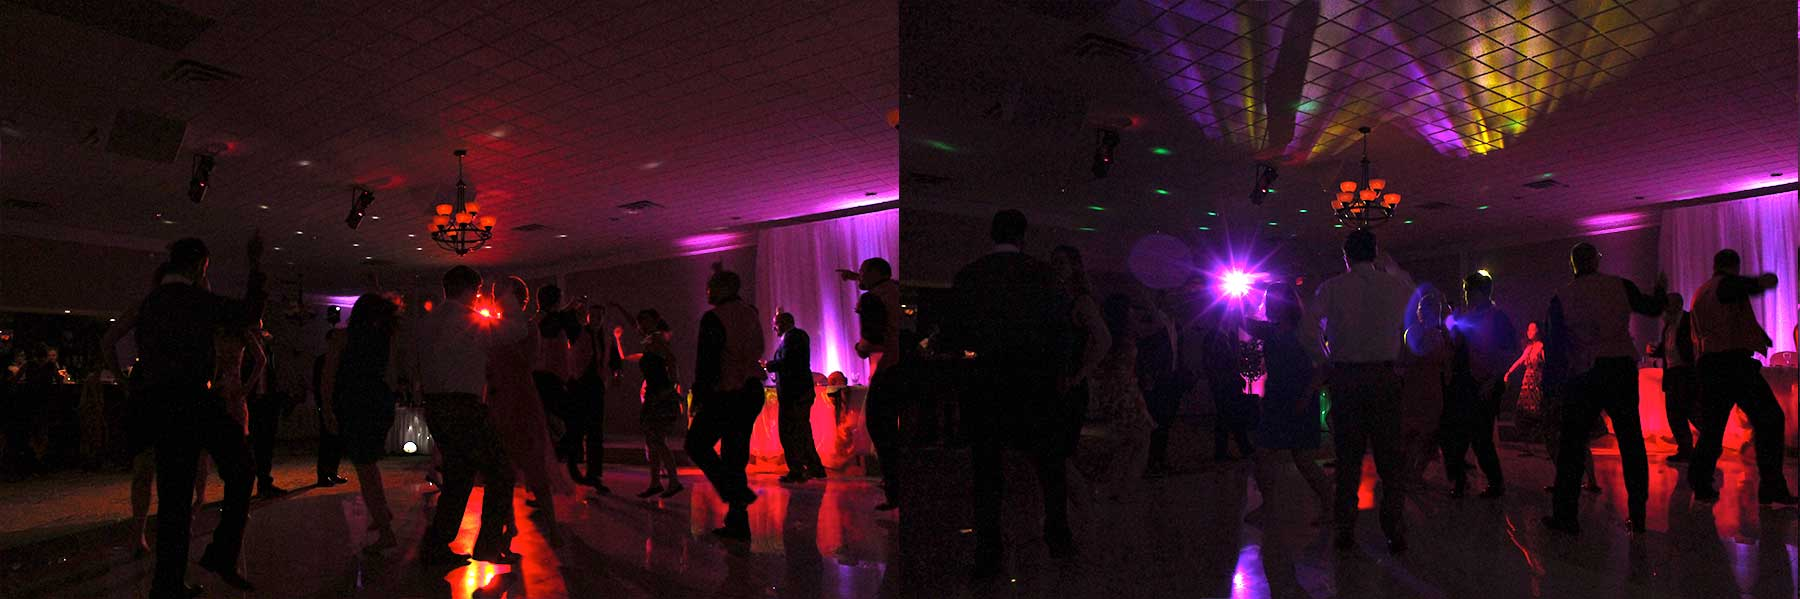 Wedding-DJ-at-Caledon-Estates-Banquet-Hall